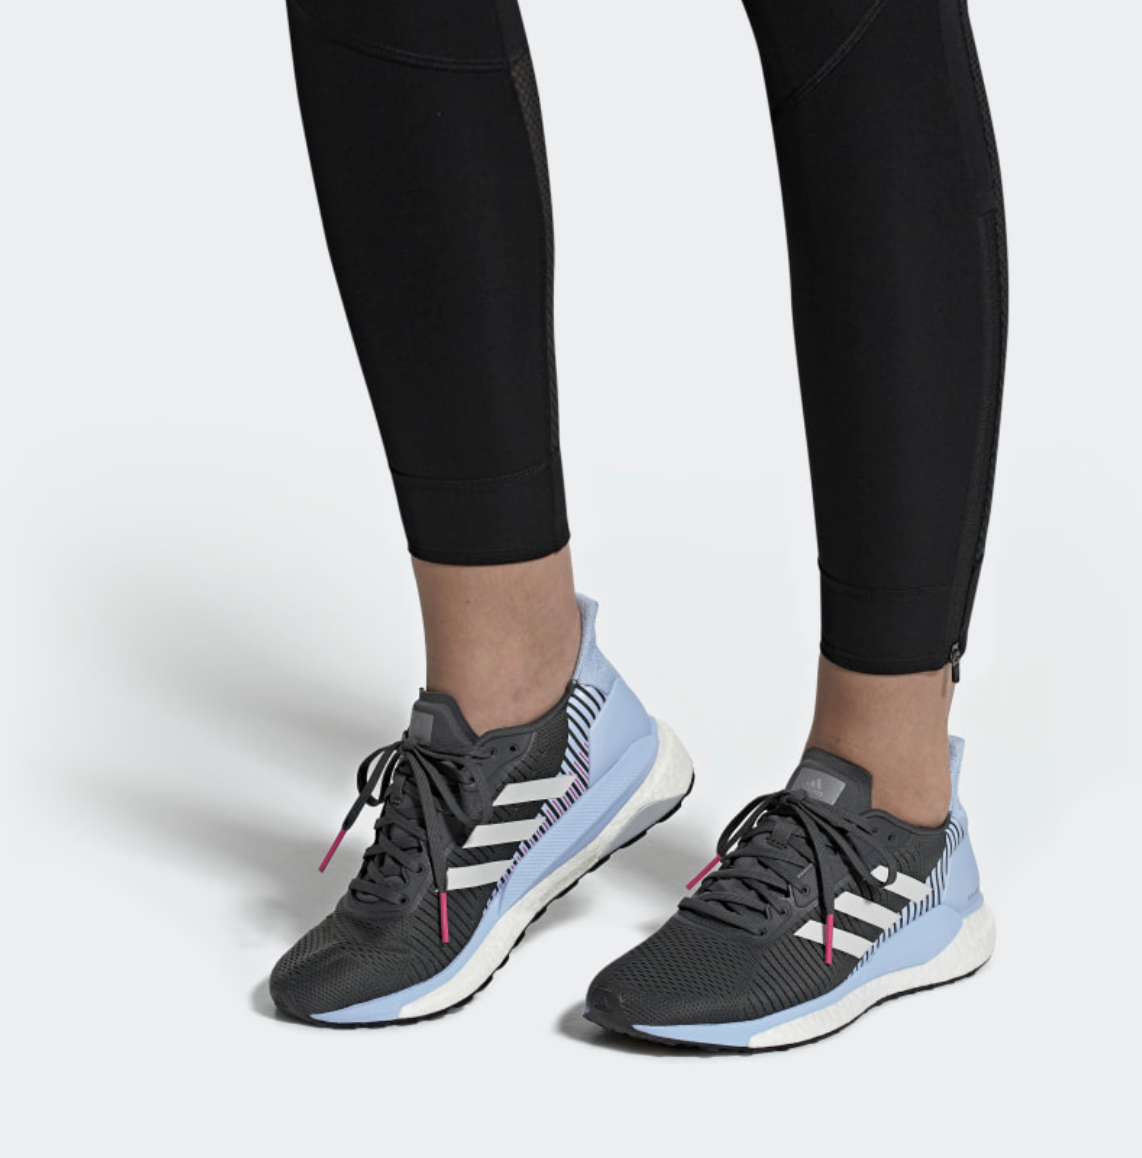 An Adidas model wears SolarGlide ST 19 Shoes that have a black toe section and a light blue heel section